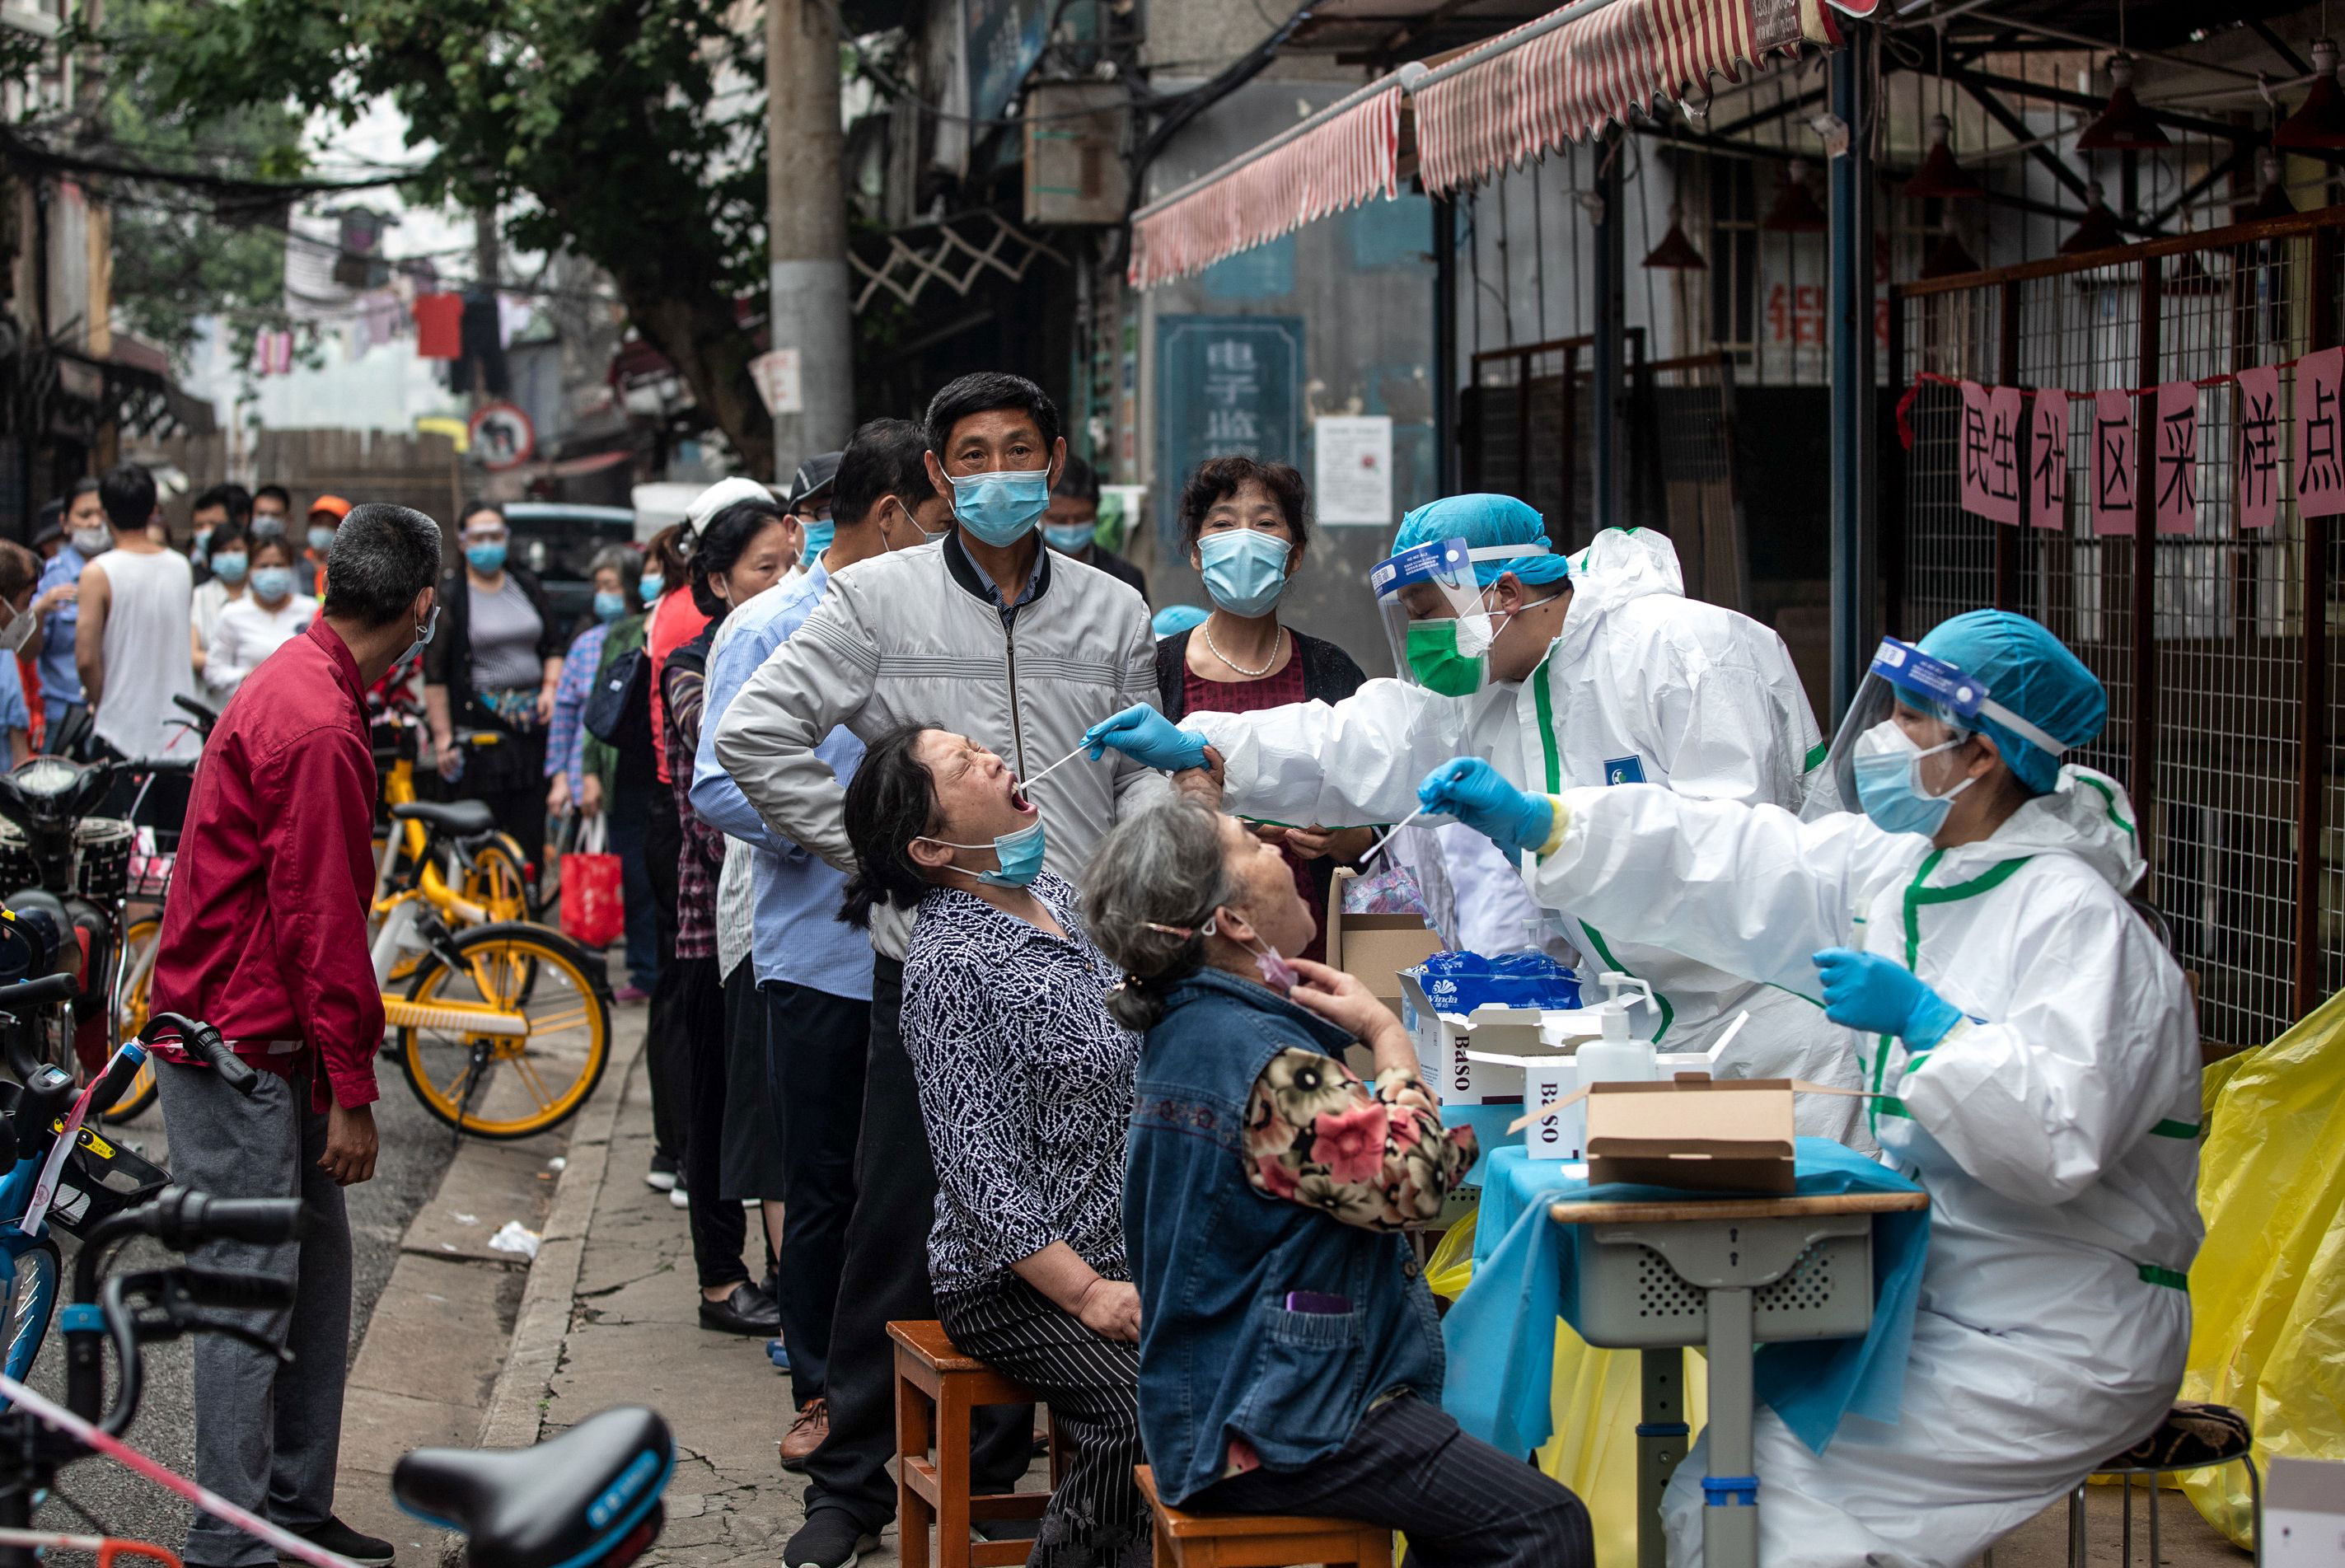 Medical workers take swab samples from residents to be tested for coronavirus on May 15 in Wuhan, China.